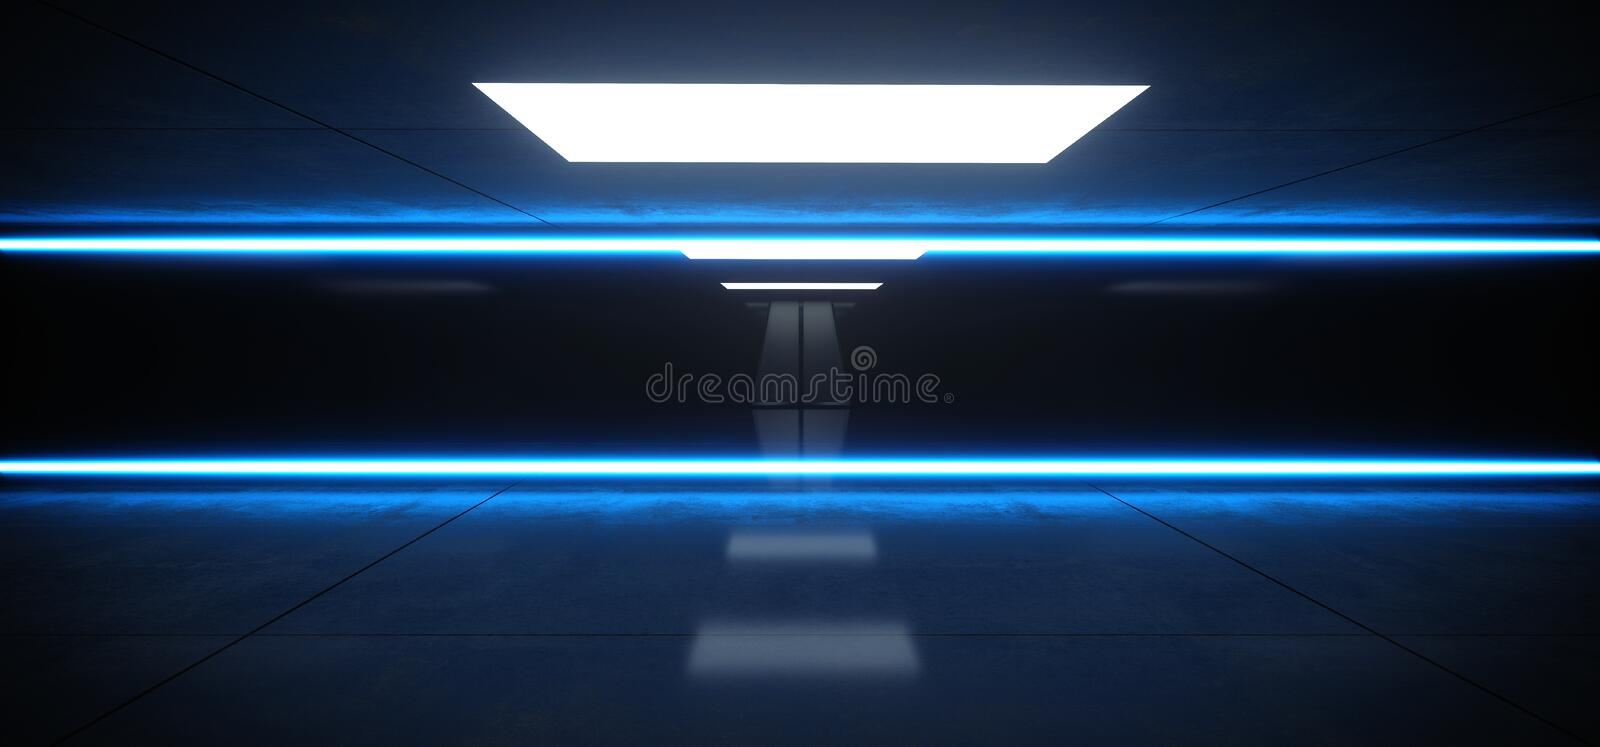 Horizontal Lines Neon Studio Construction Triangle Vibrant Sci Fi Tiled Stage Dance Lights Glowing Blue Reflecting On Grunge. Concrete Big White Glowing Lights royalty free illustration